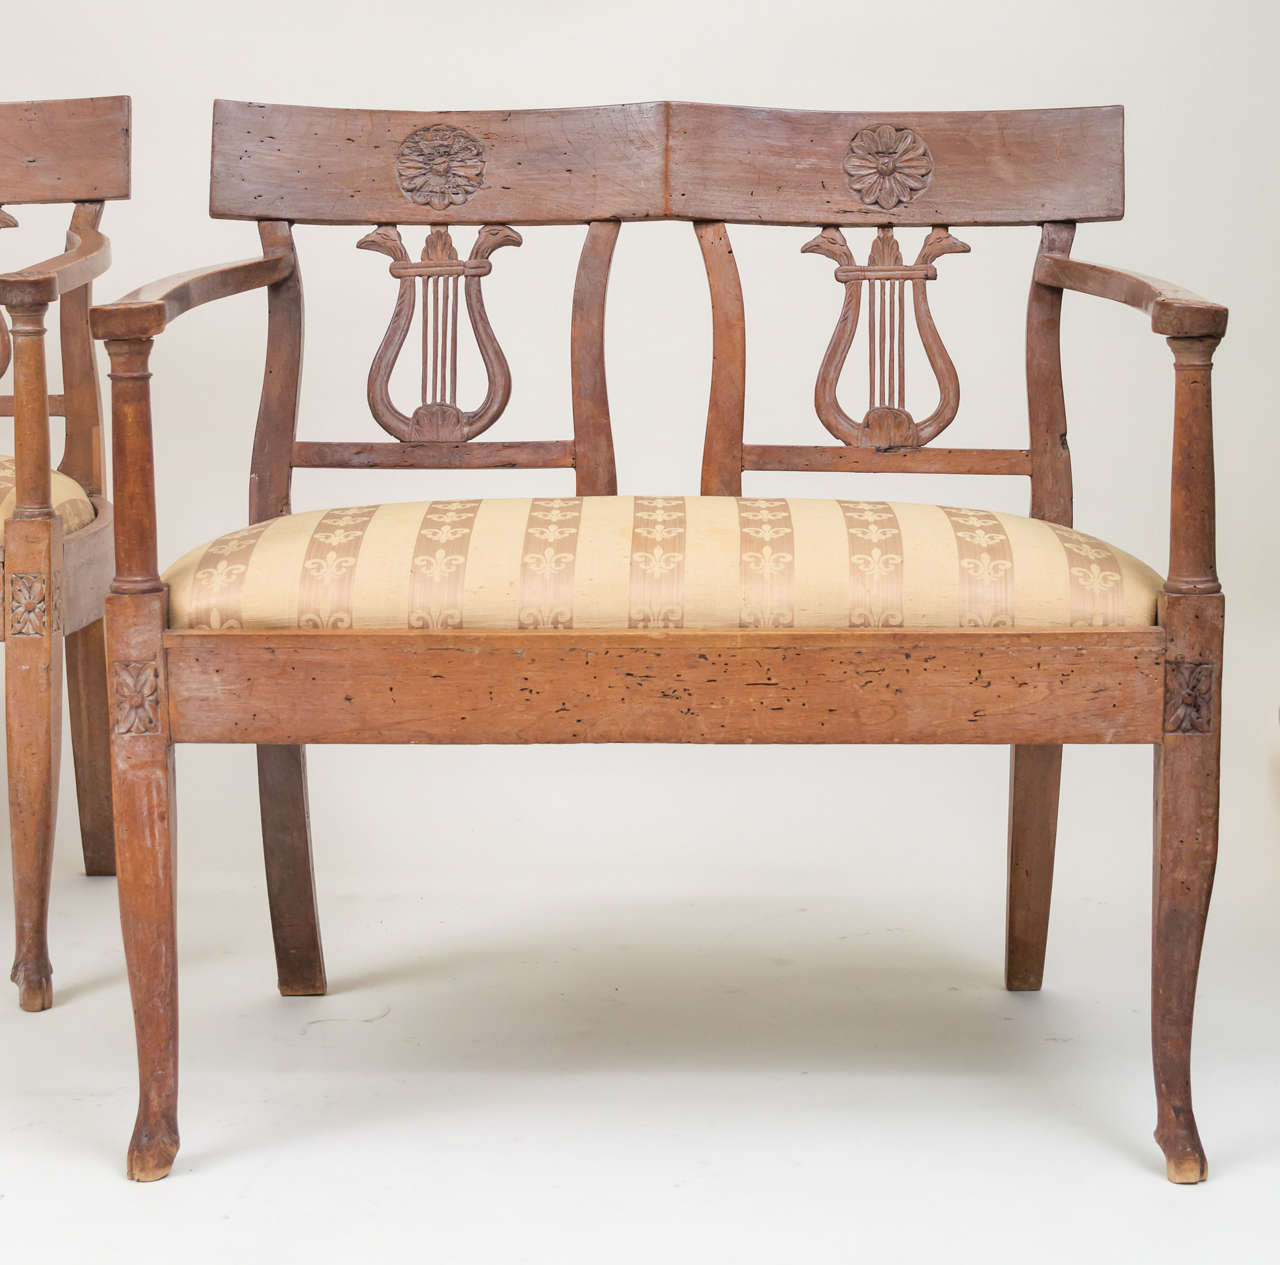 Late 18th Century Italian Neoclassic Walnut Benches, Pair 3